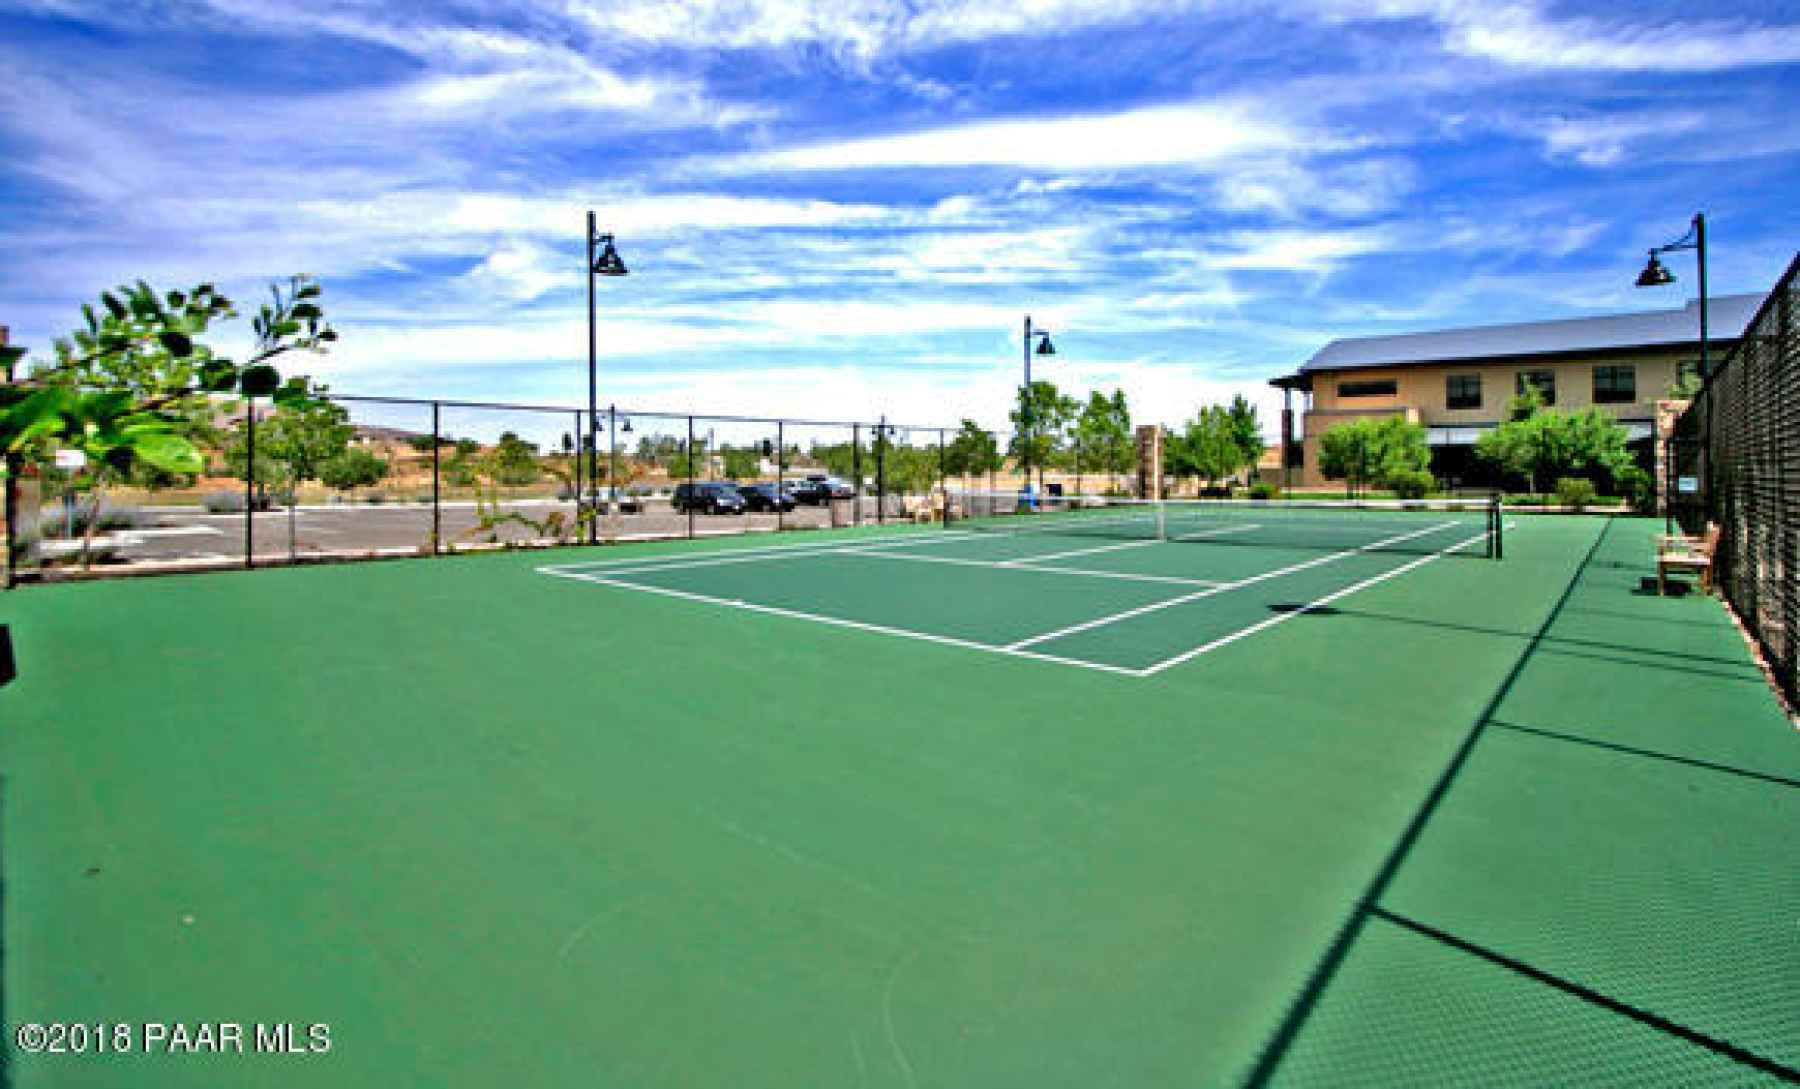 StoneRidge Tennis Courts